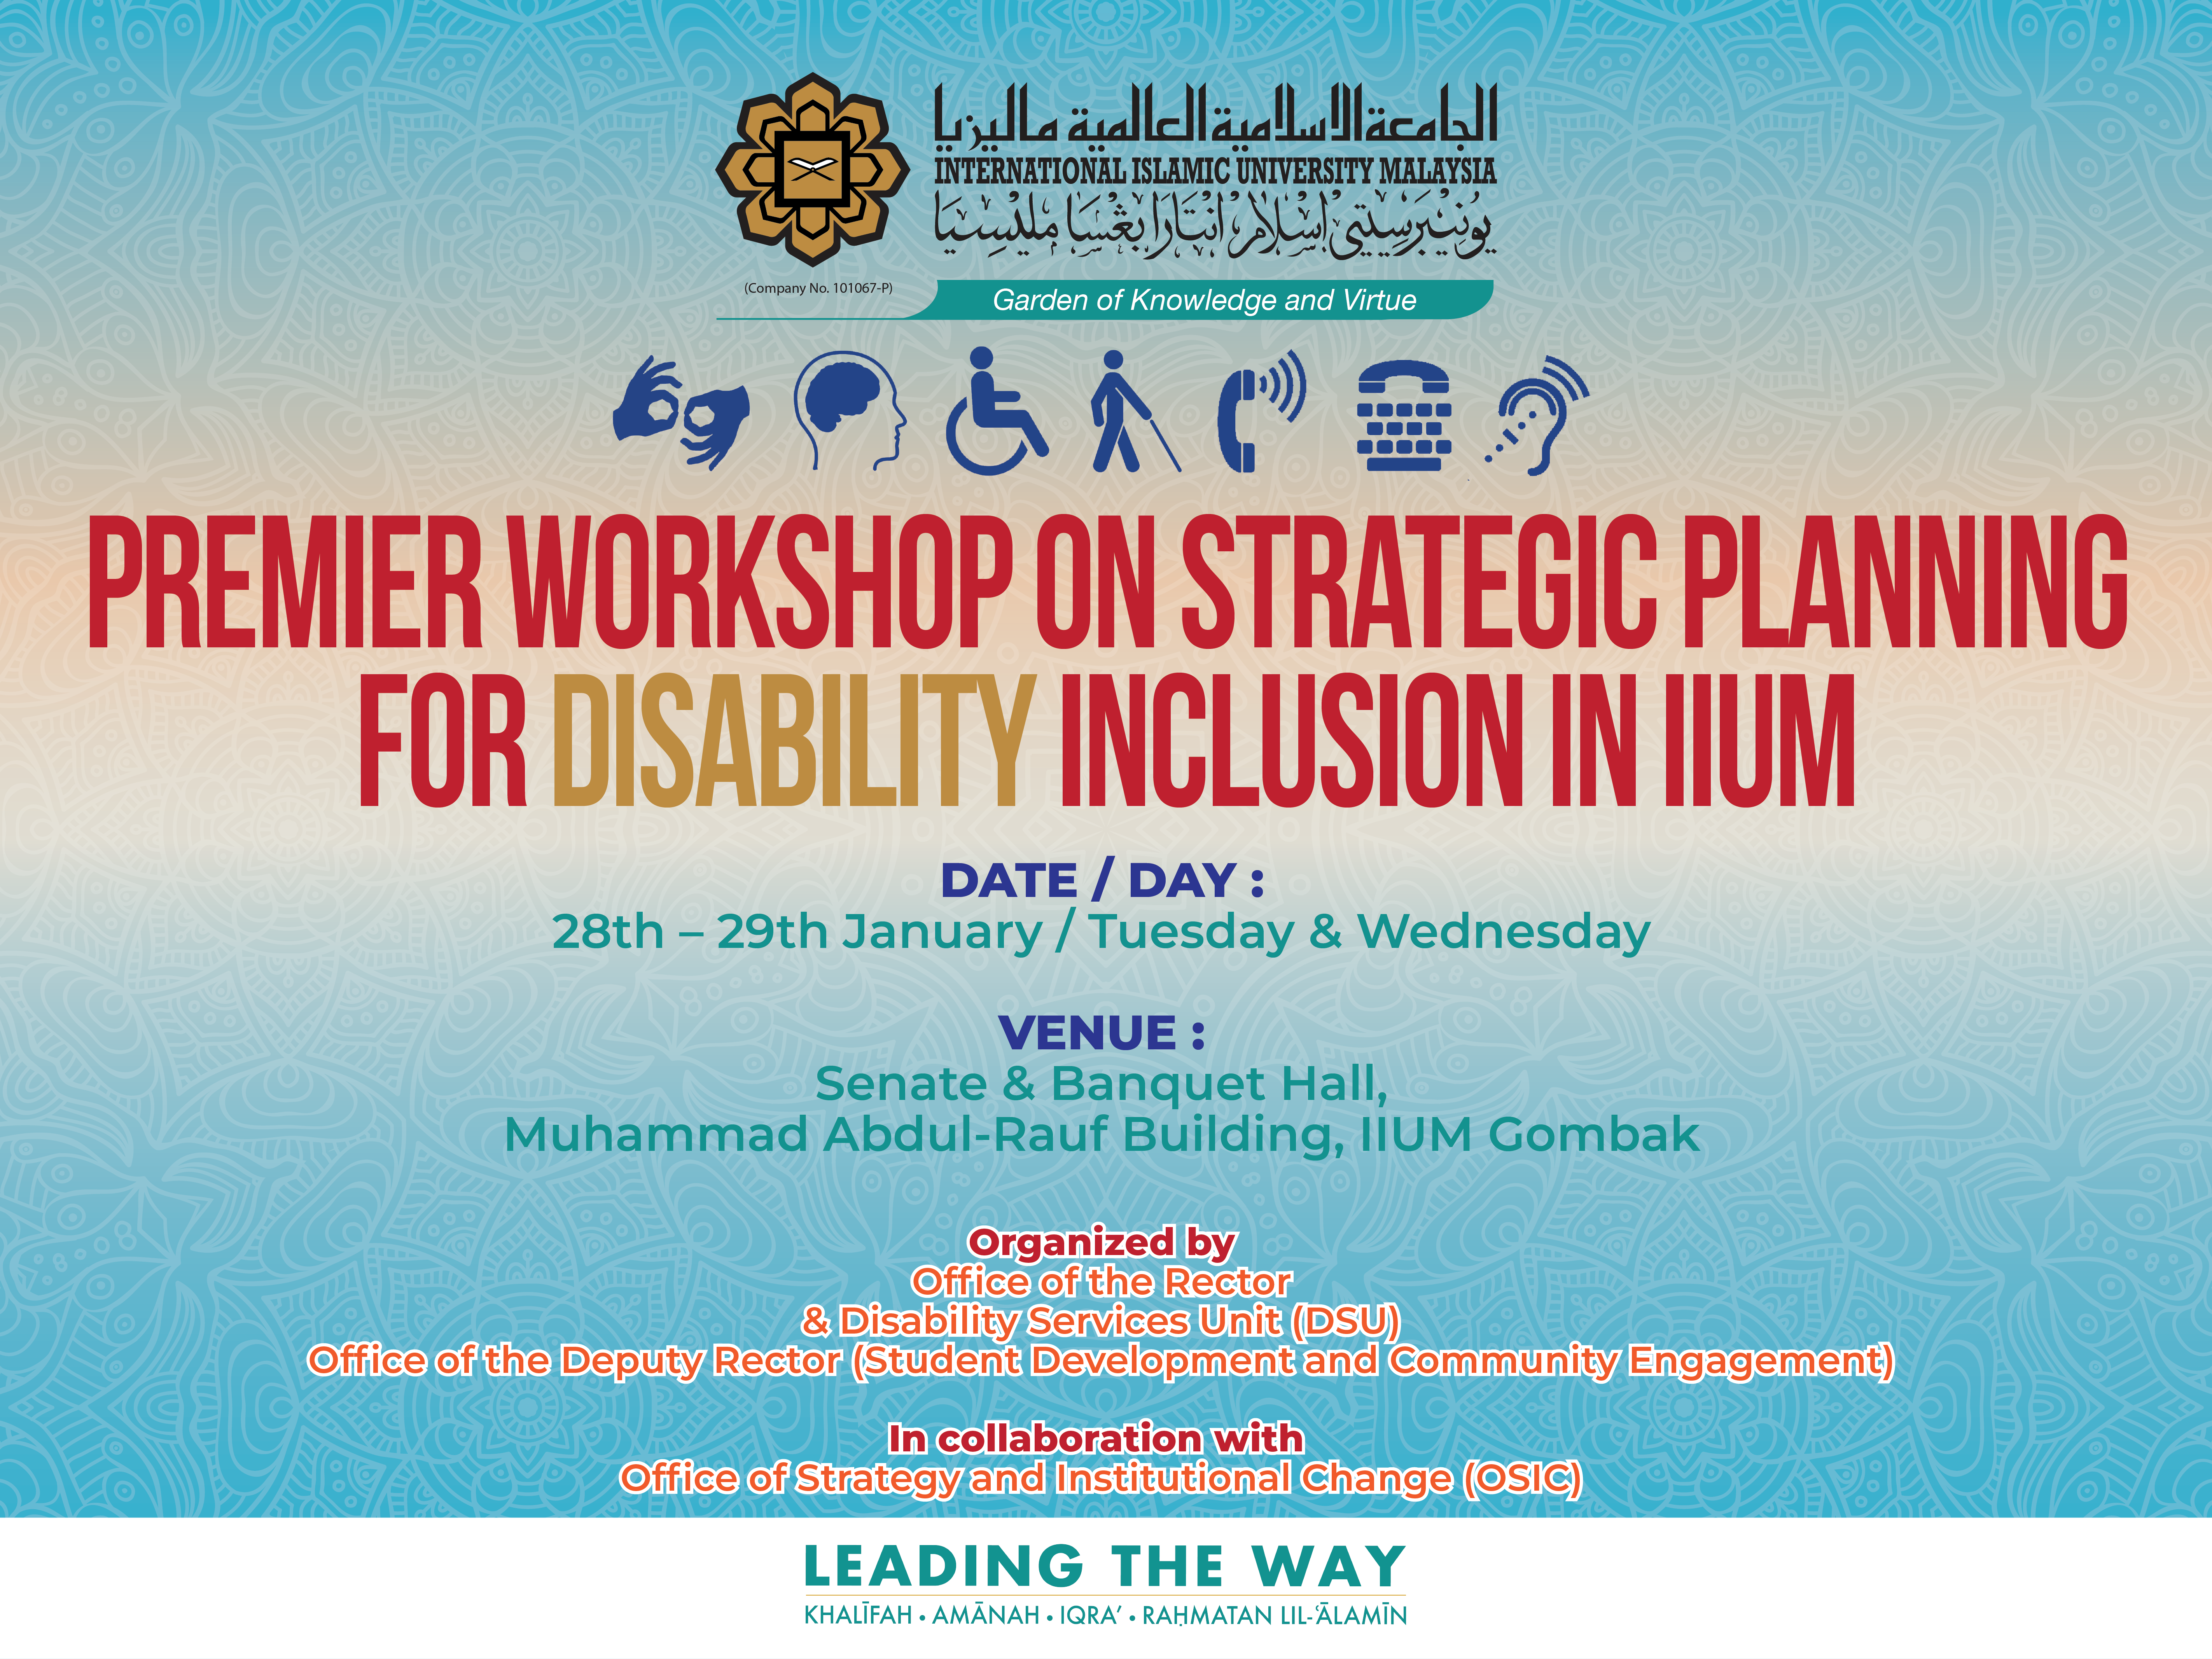 Premier Workshop o nn Strategci Planning fro Disability Inclusion in IIUM